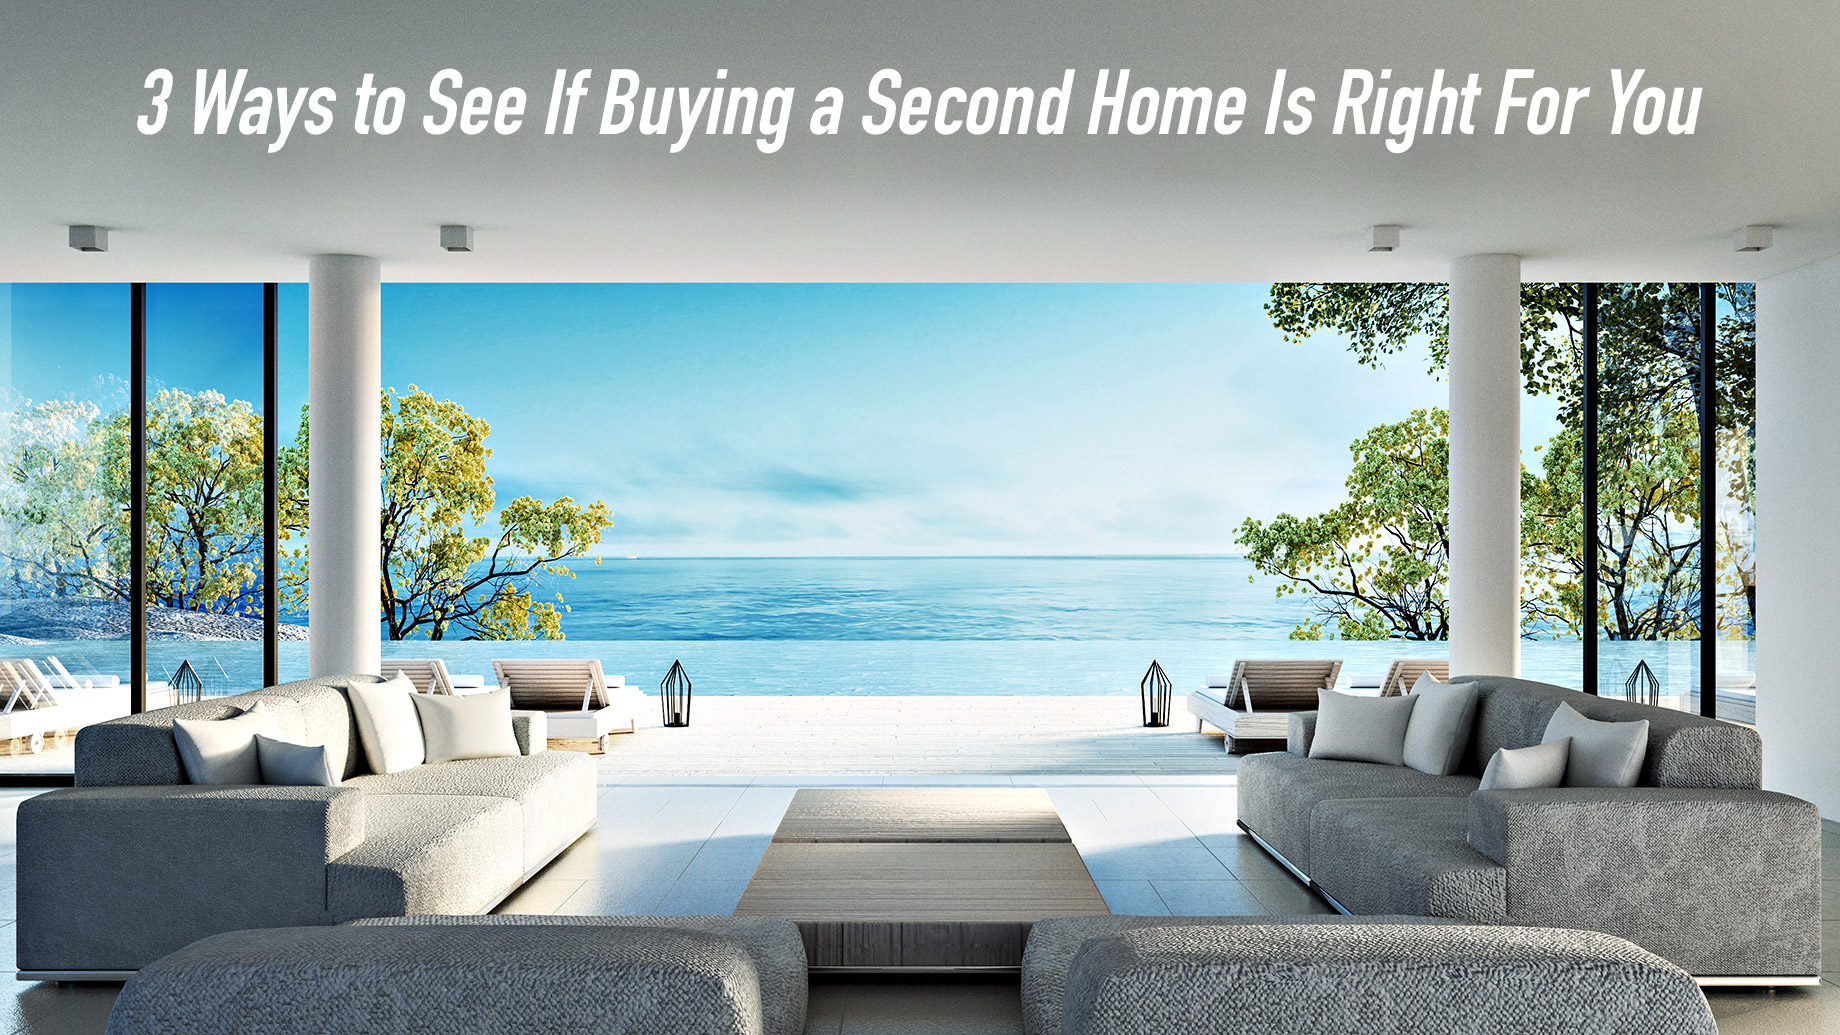 3 Ways to See If Buying a Second Home Is Right For You